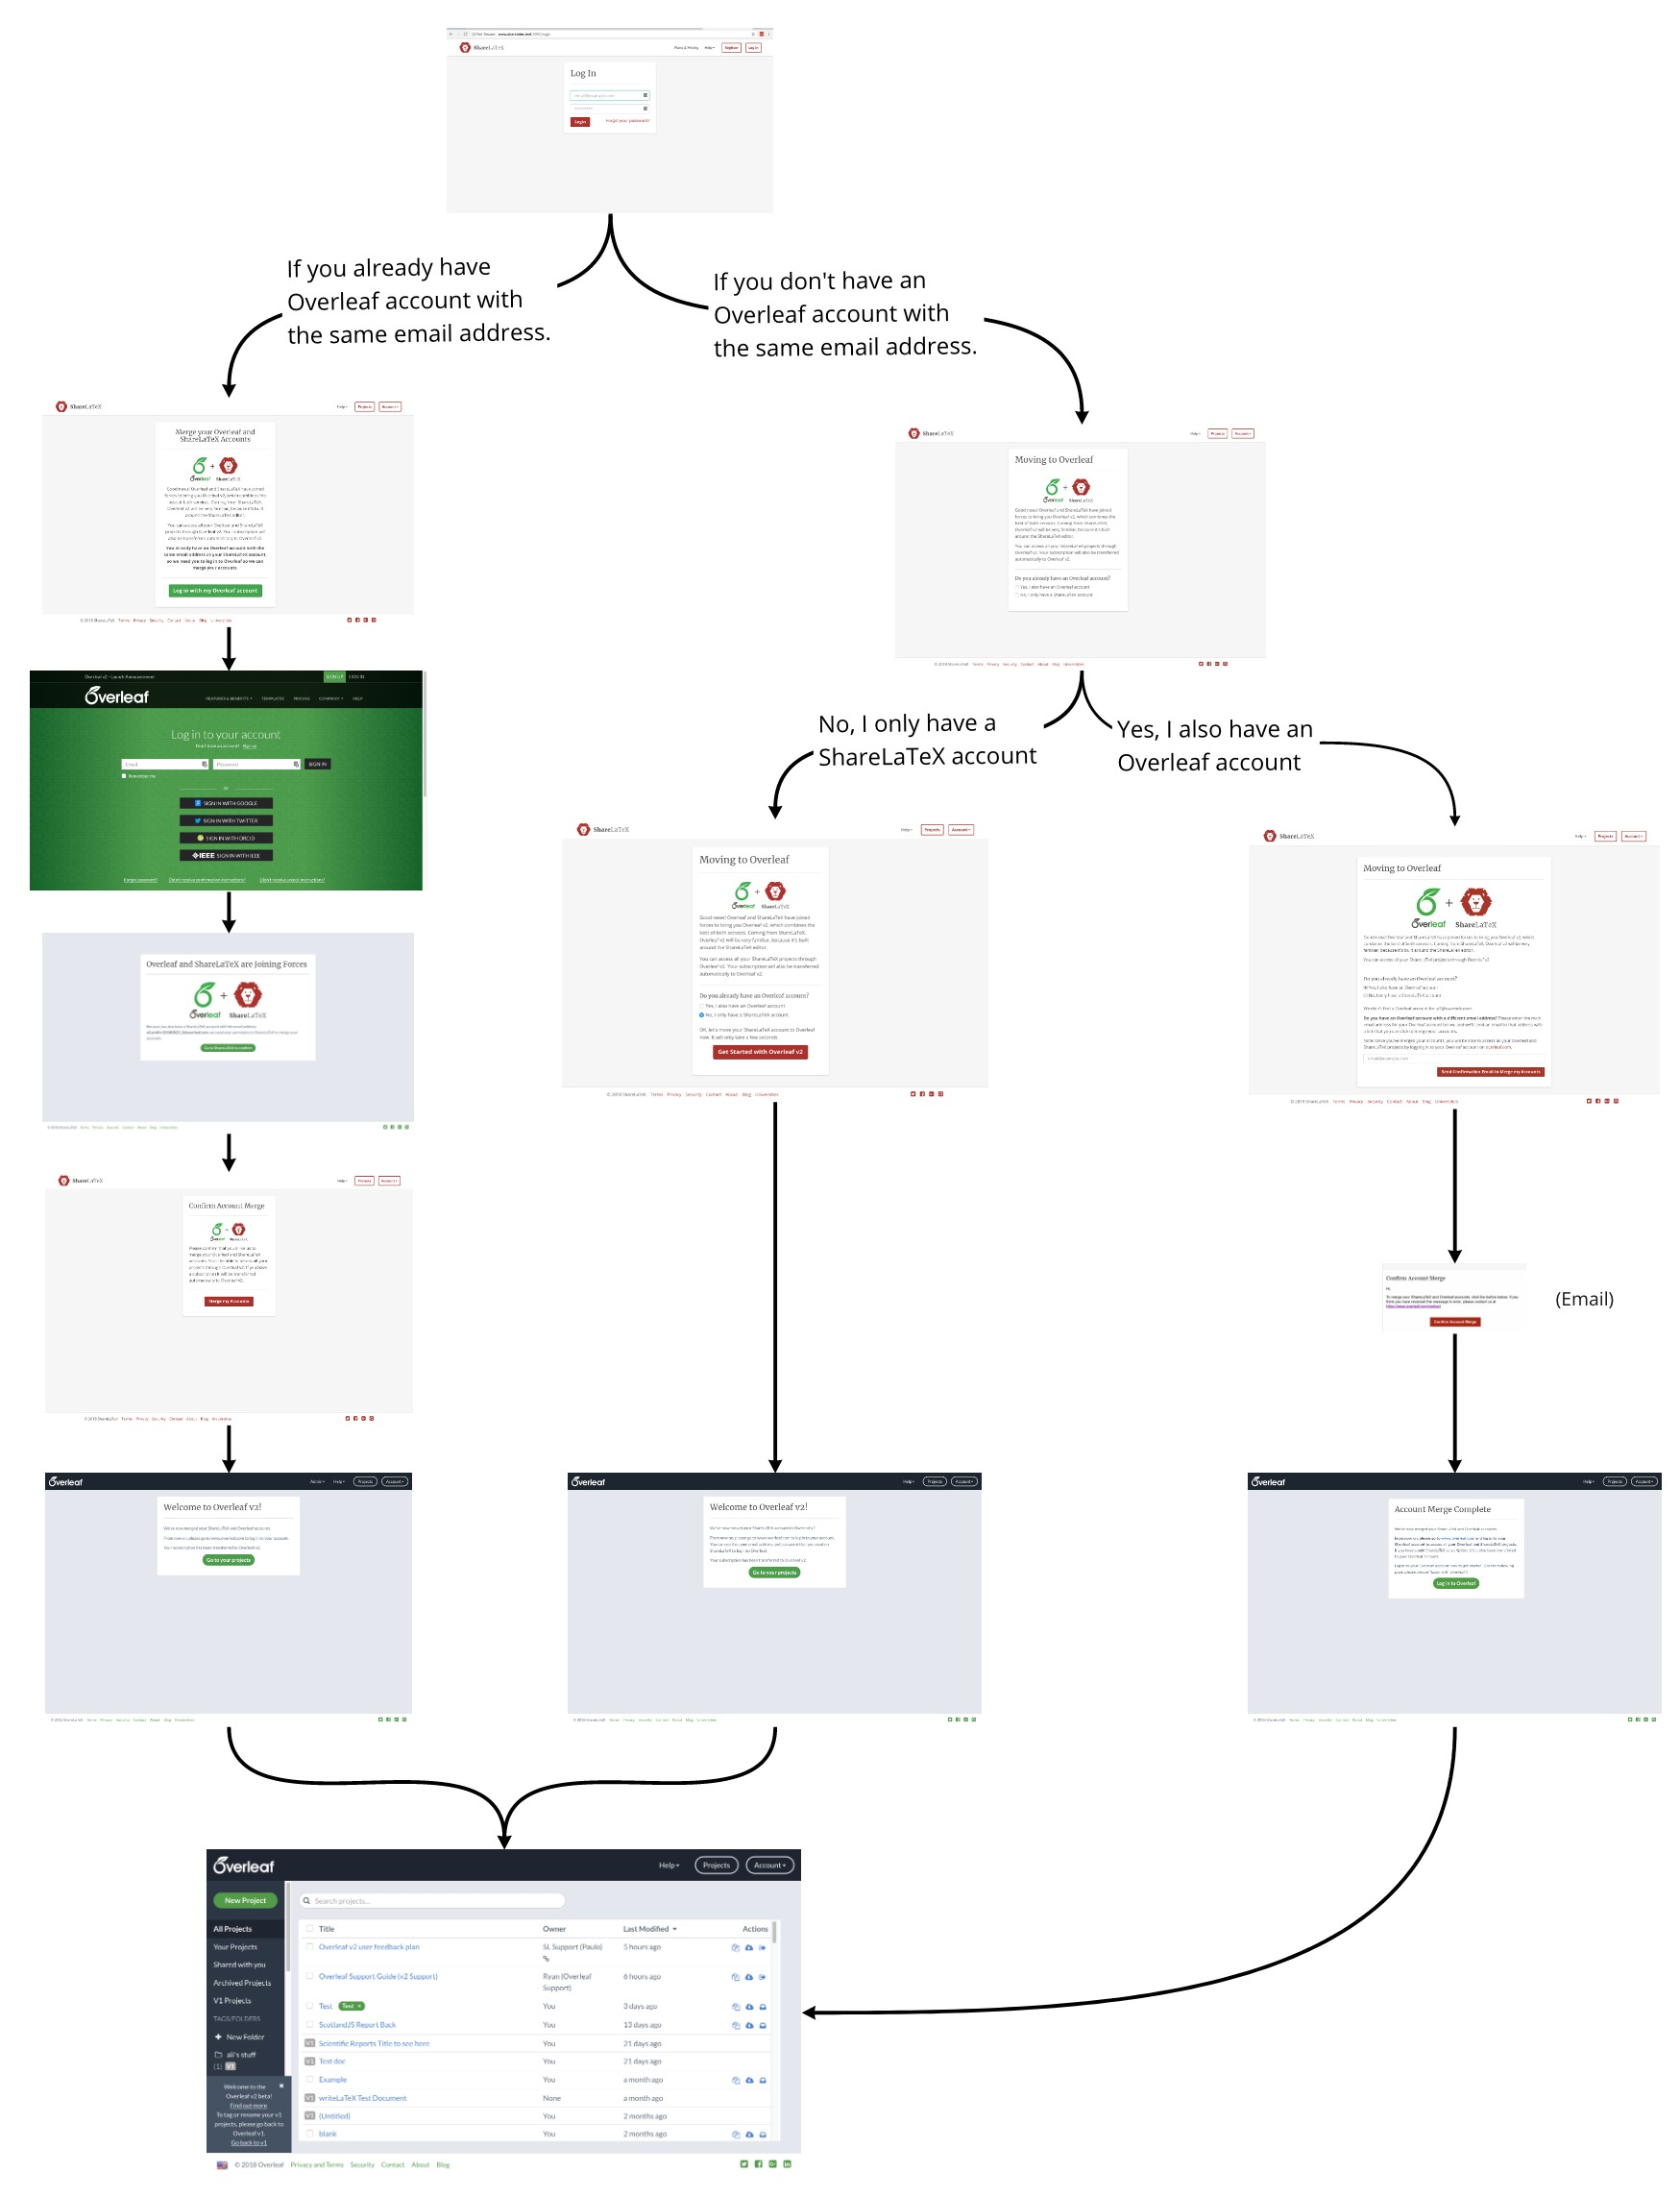 flowchart of moving your ShareLaTeX account to Overleaf v2